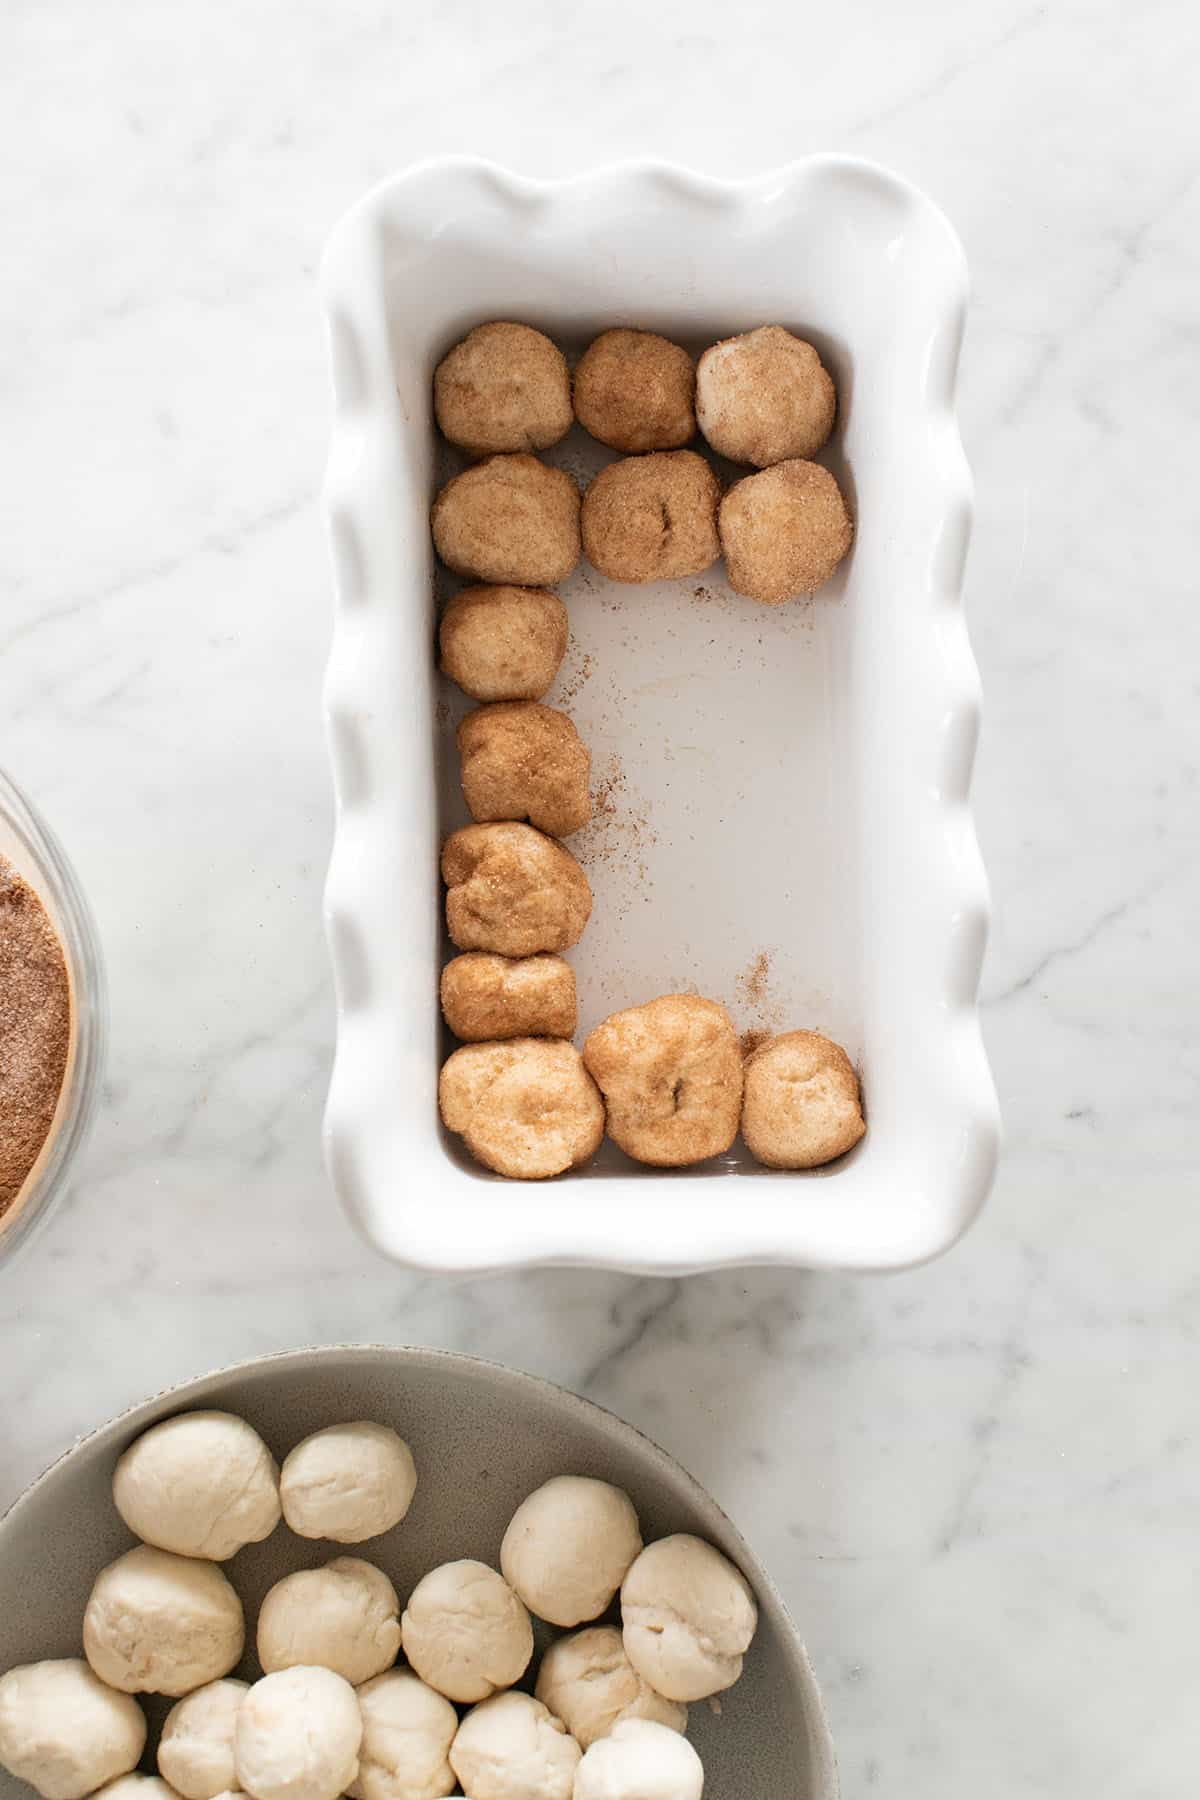 monkey bread with biscuits